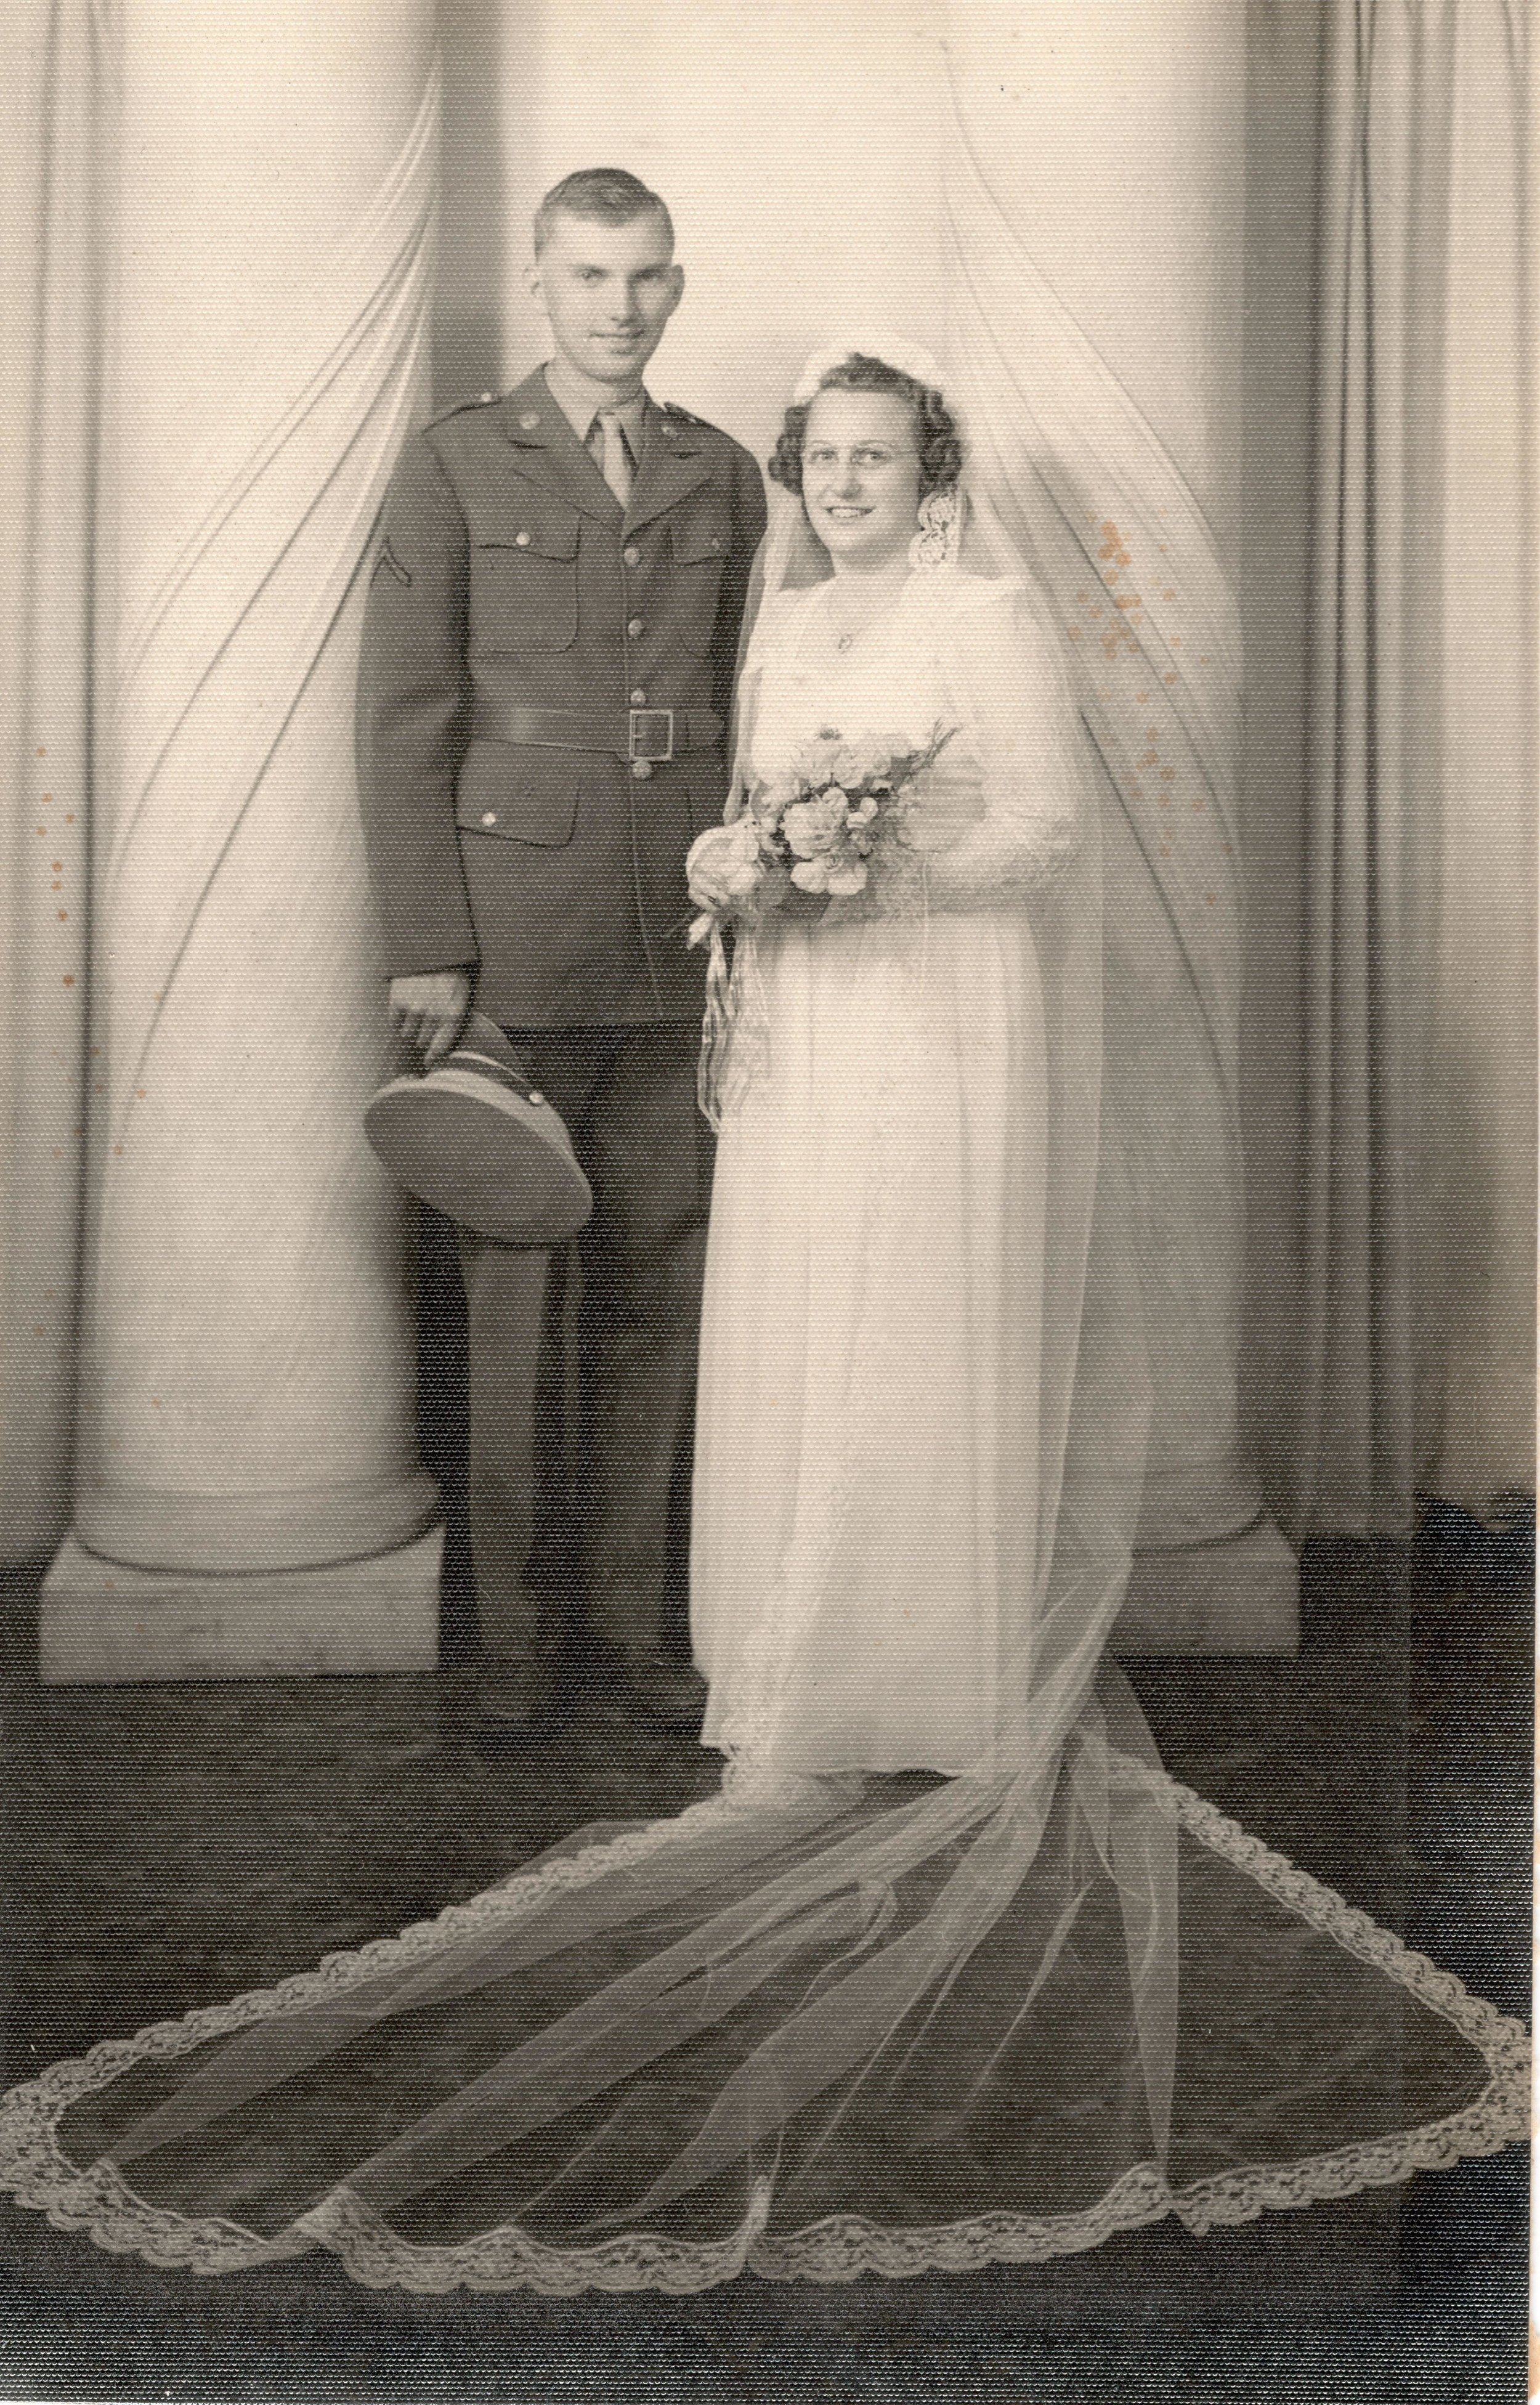 Kermit and Evelyn Brekke on their wedding day, La Crosse County Historical Society